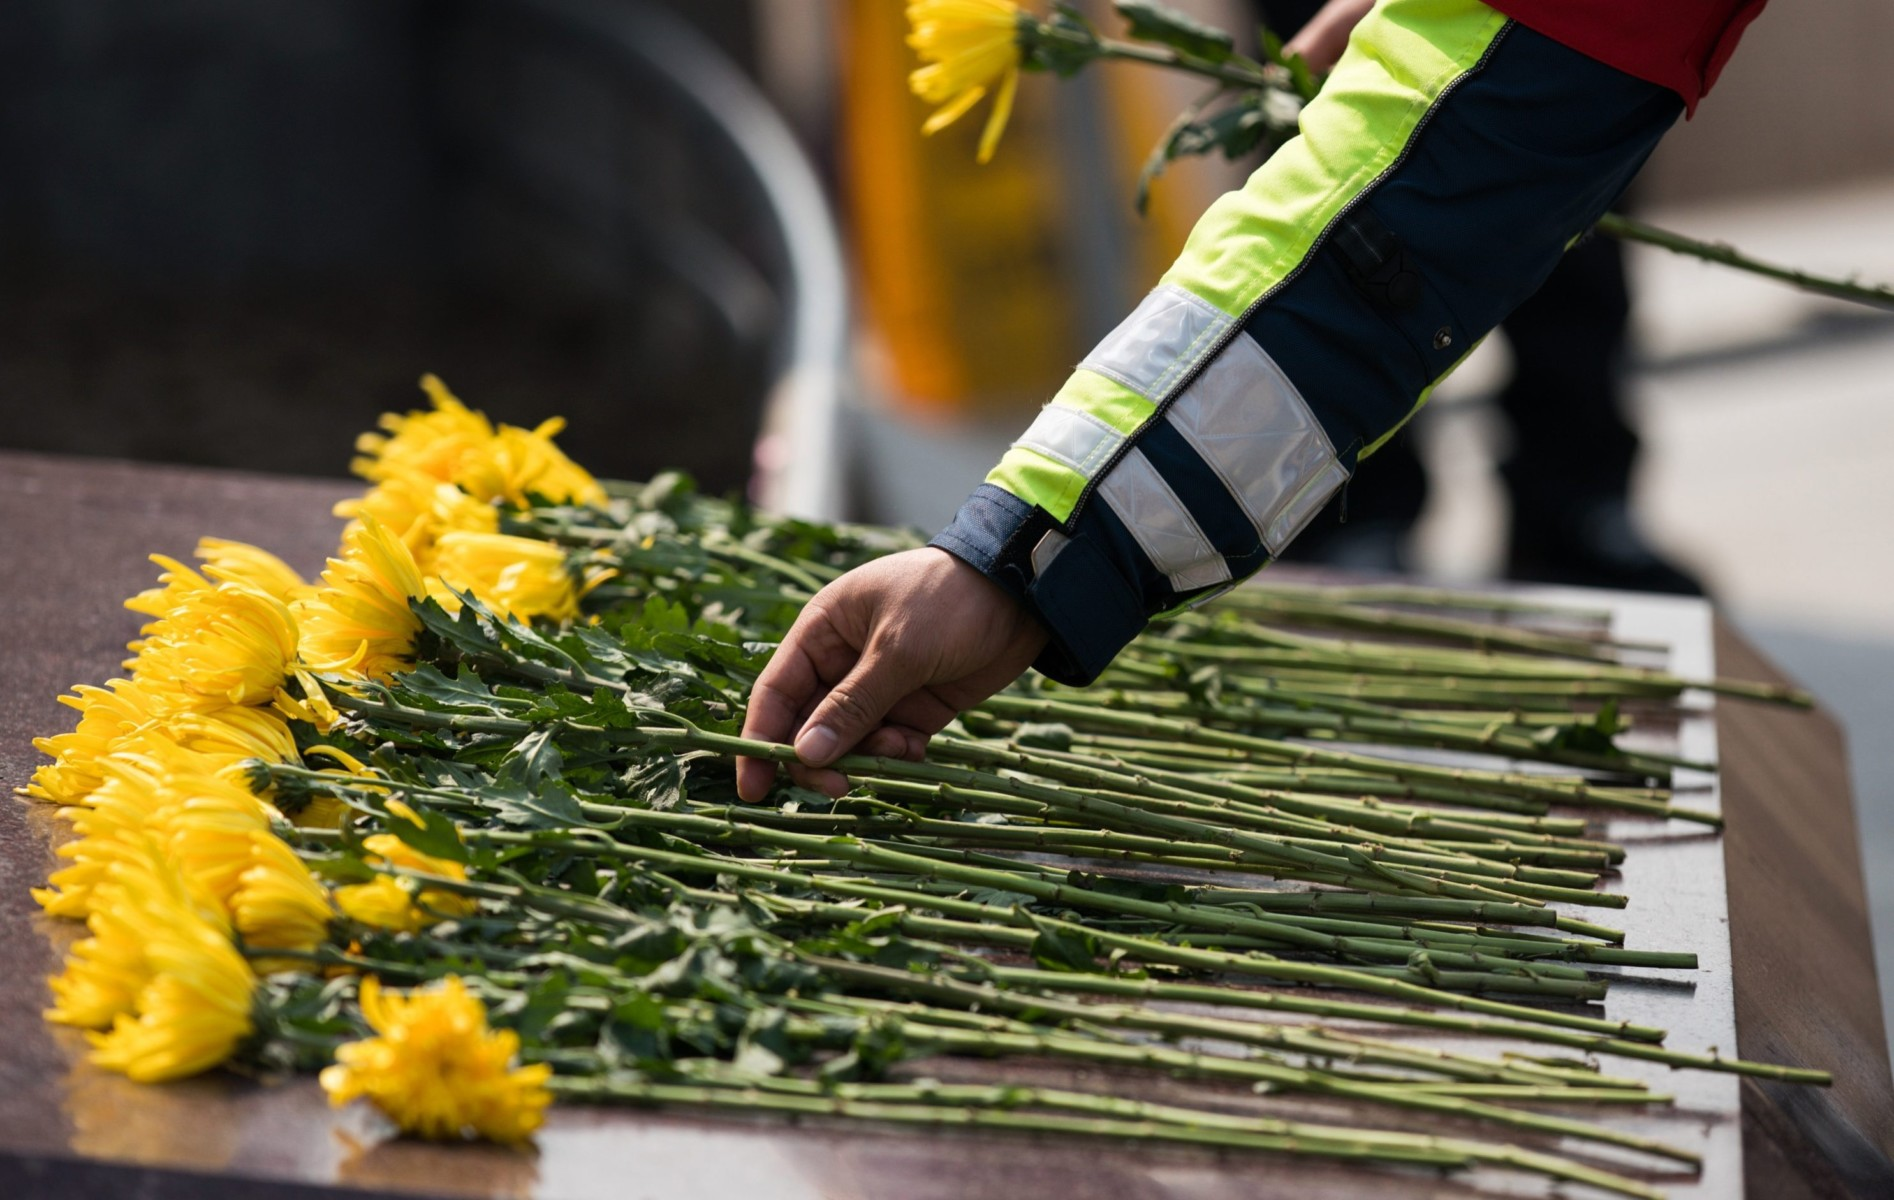 Chinese policemen lay flowers during a memorial to mourn for victims of COVID-19 in Shanghai